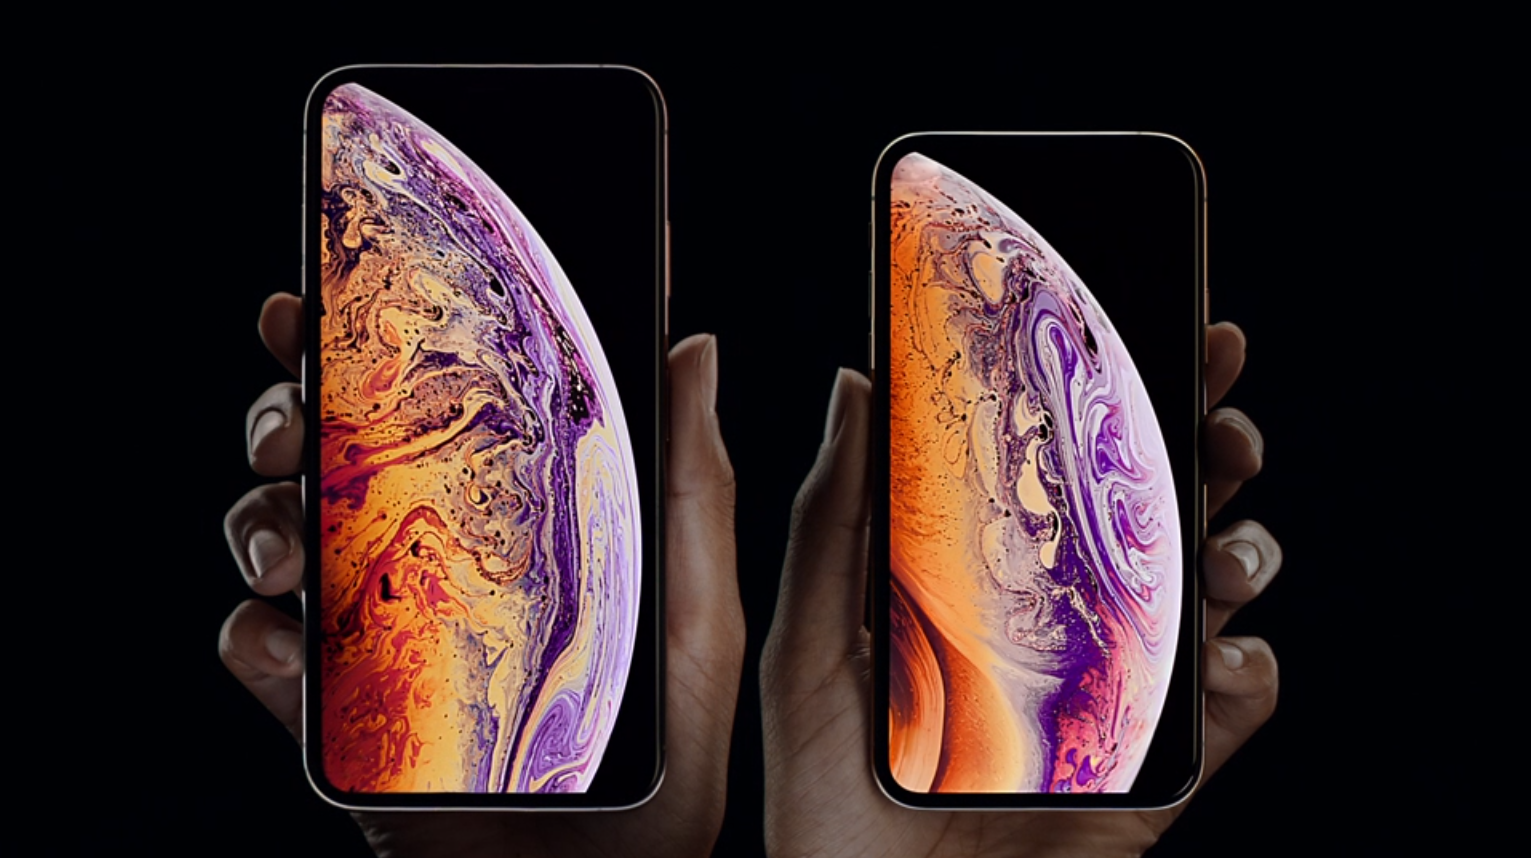 advertising apple au feature iphone iphone-xs iphone-xs-max